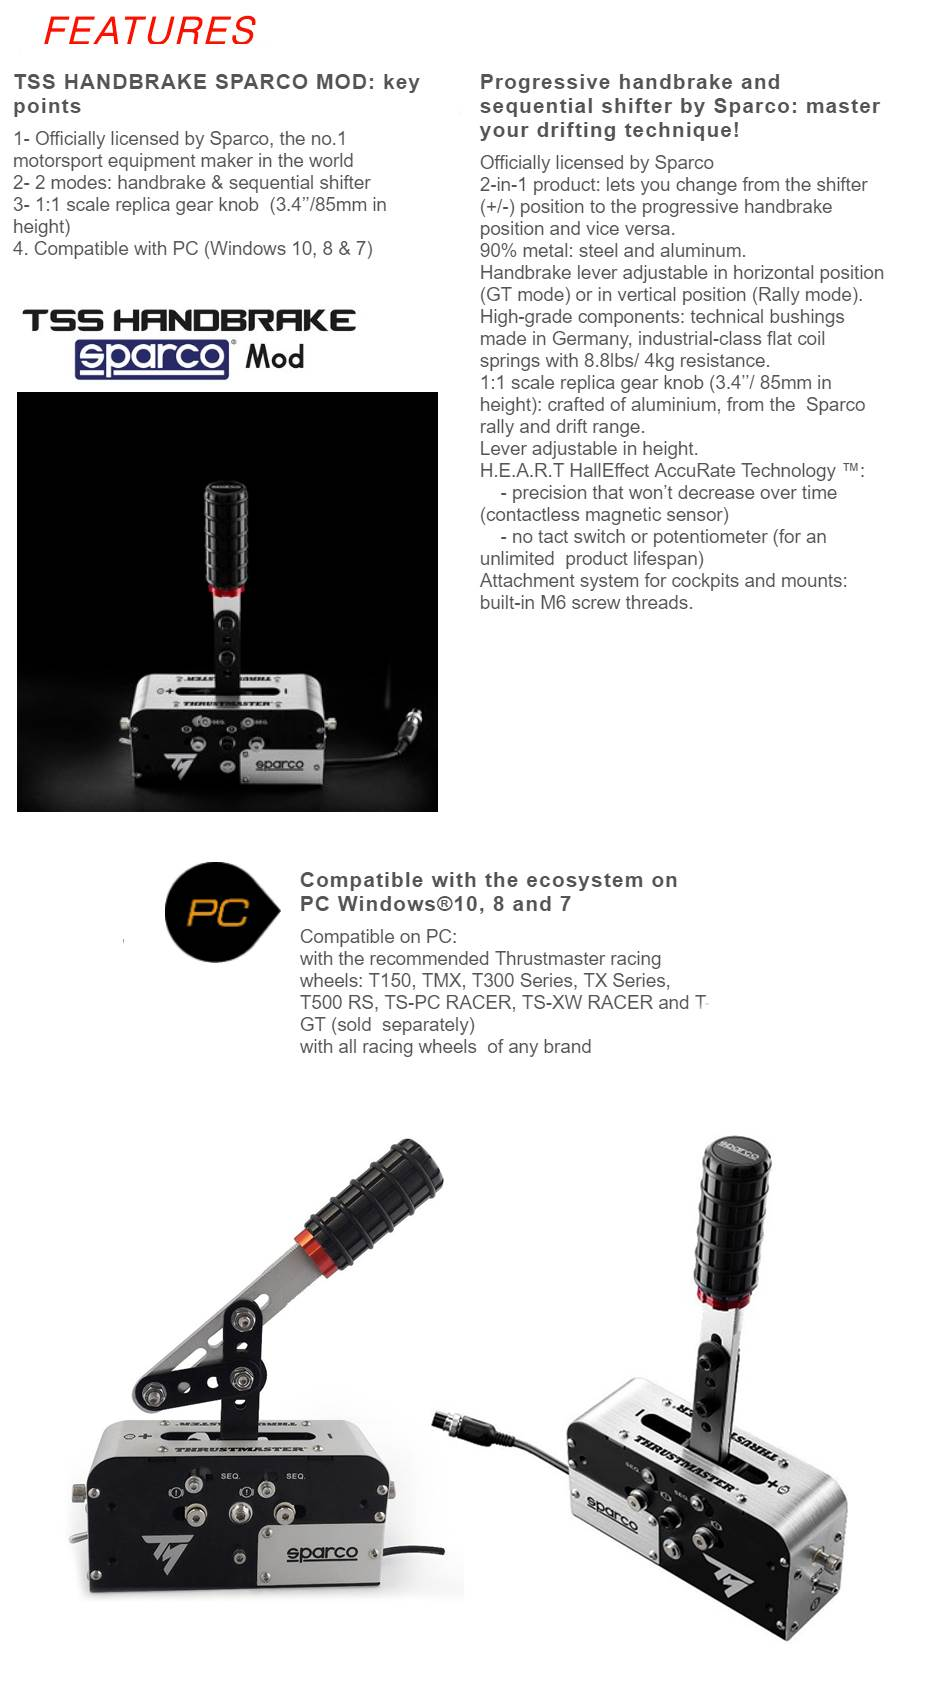 Thrustmaster Tss Handbrake Sparco Mod For Pc Racing Wheels Tm Ts Xw Racer New Manufacturer Warranty 2 Years Limited